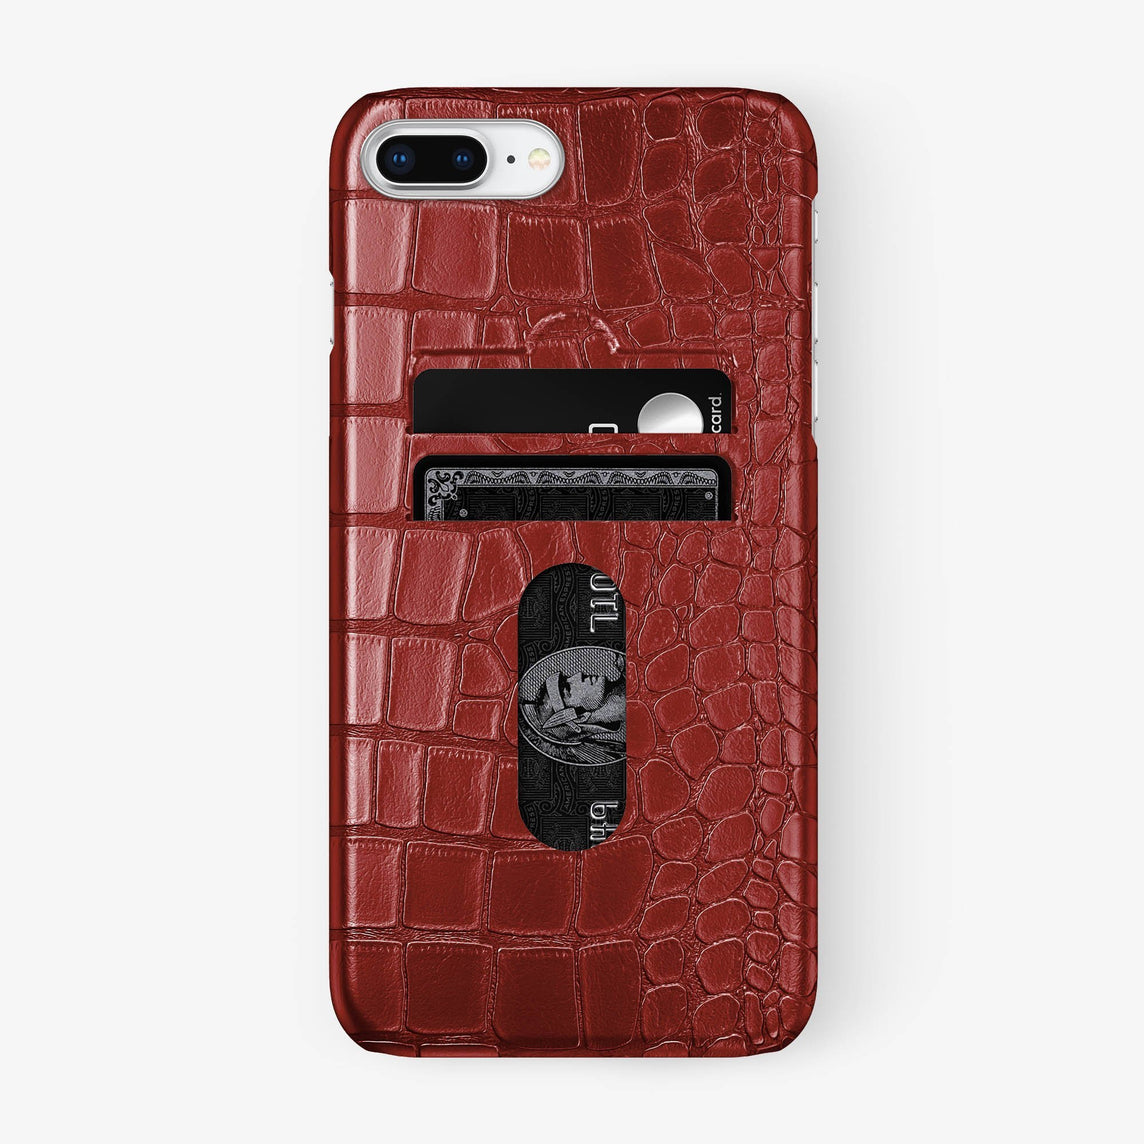 Alligator Card Holder Case iPhone 7/8 Plus | Red - Stainless Steel